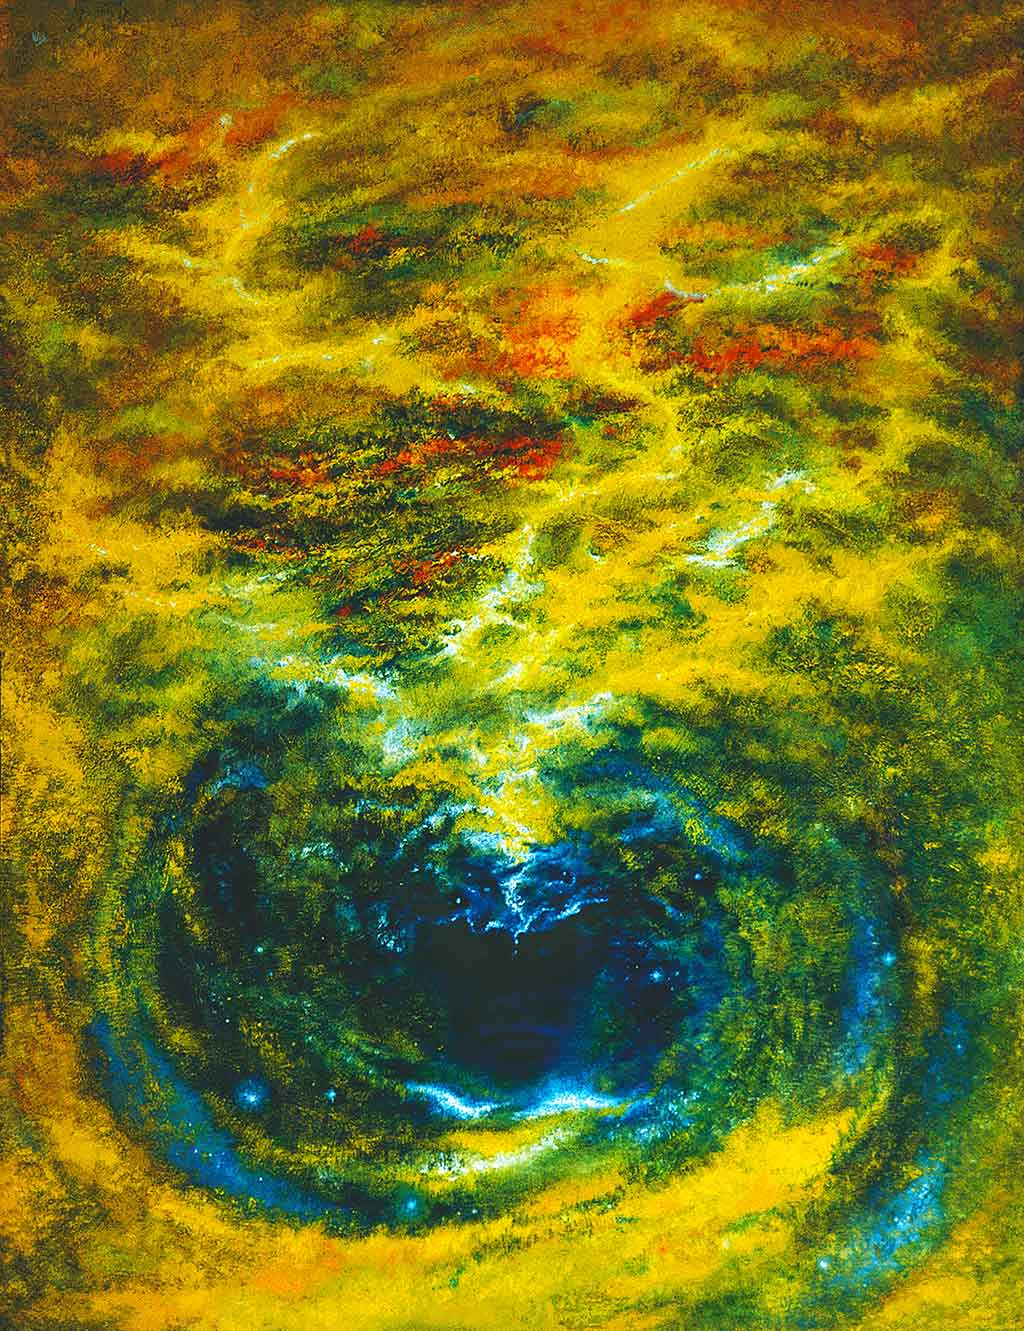 Paintings of Creation express the relationship of Man to Cosmos